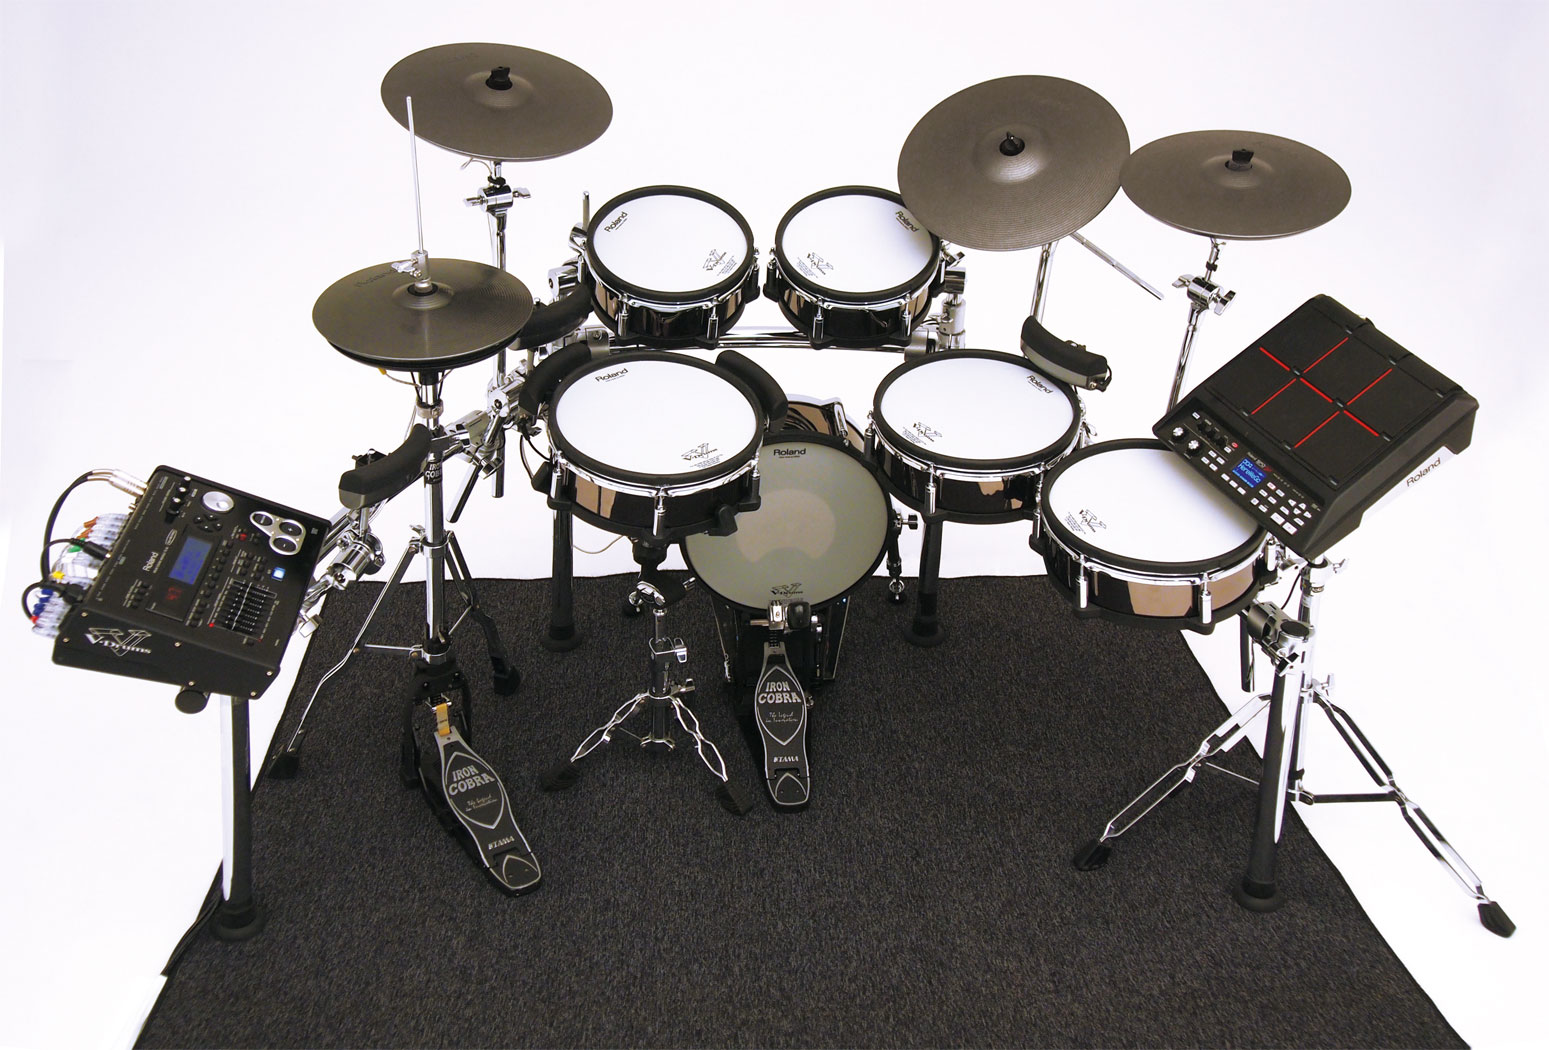 percussion instrument and drums This is the yamaha corporation [musical instrument guide] website this article contains information about the drums [the structure of the drum:the drum kit-a collection of percussion instruments.